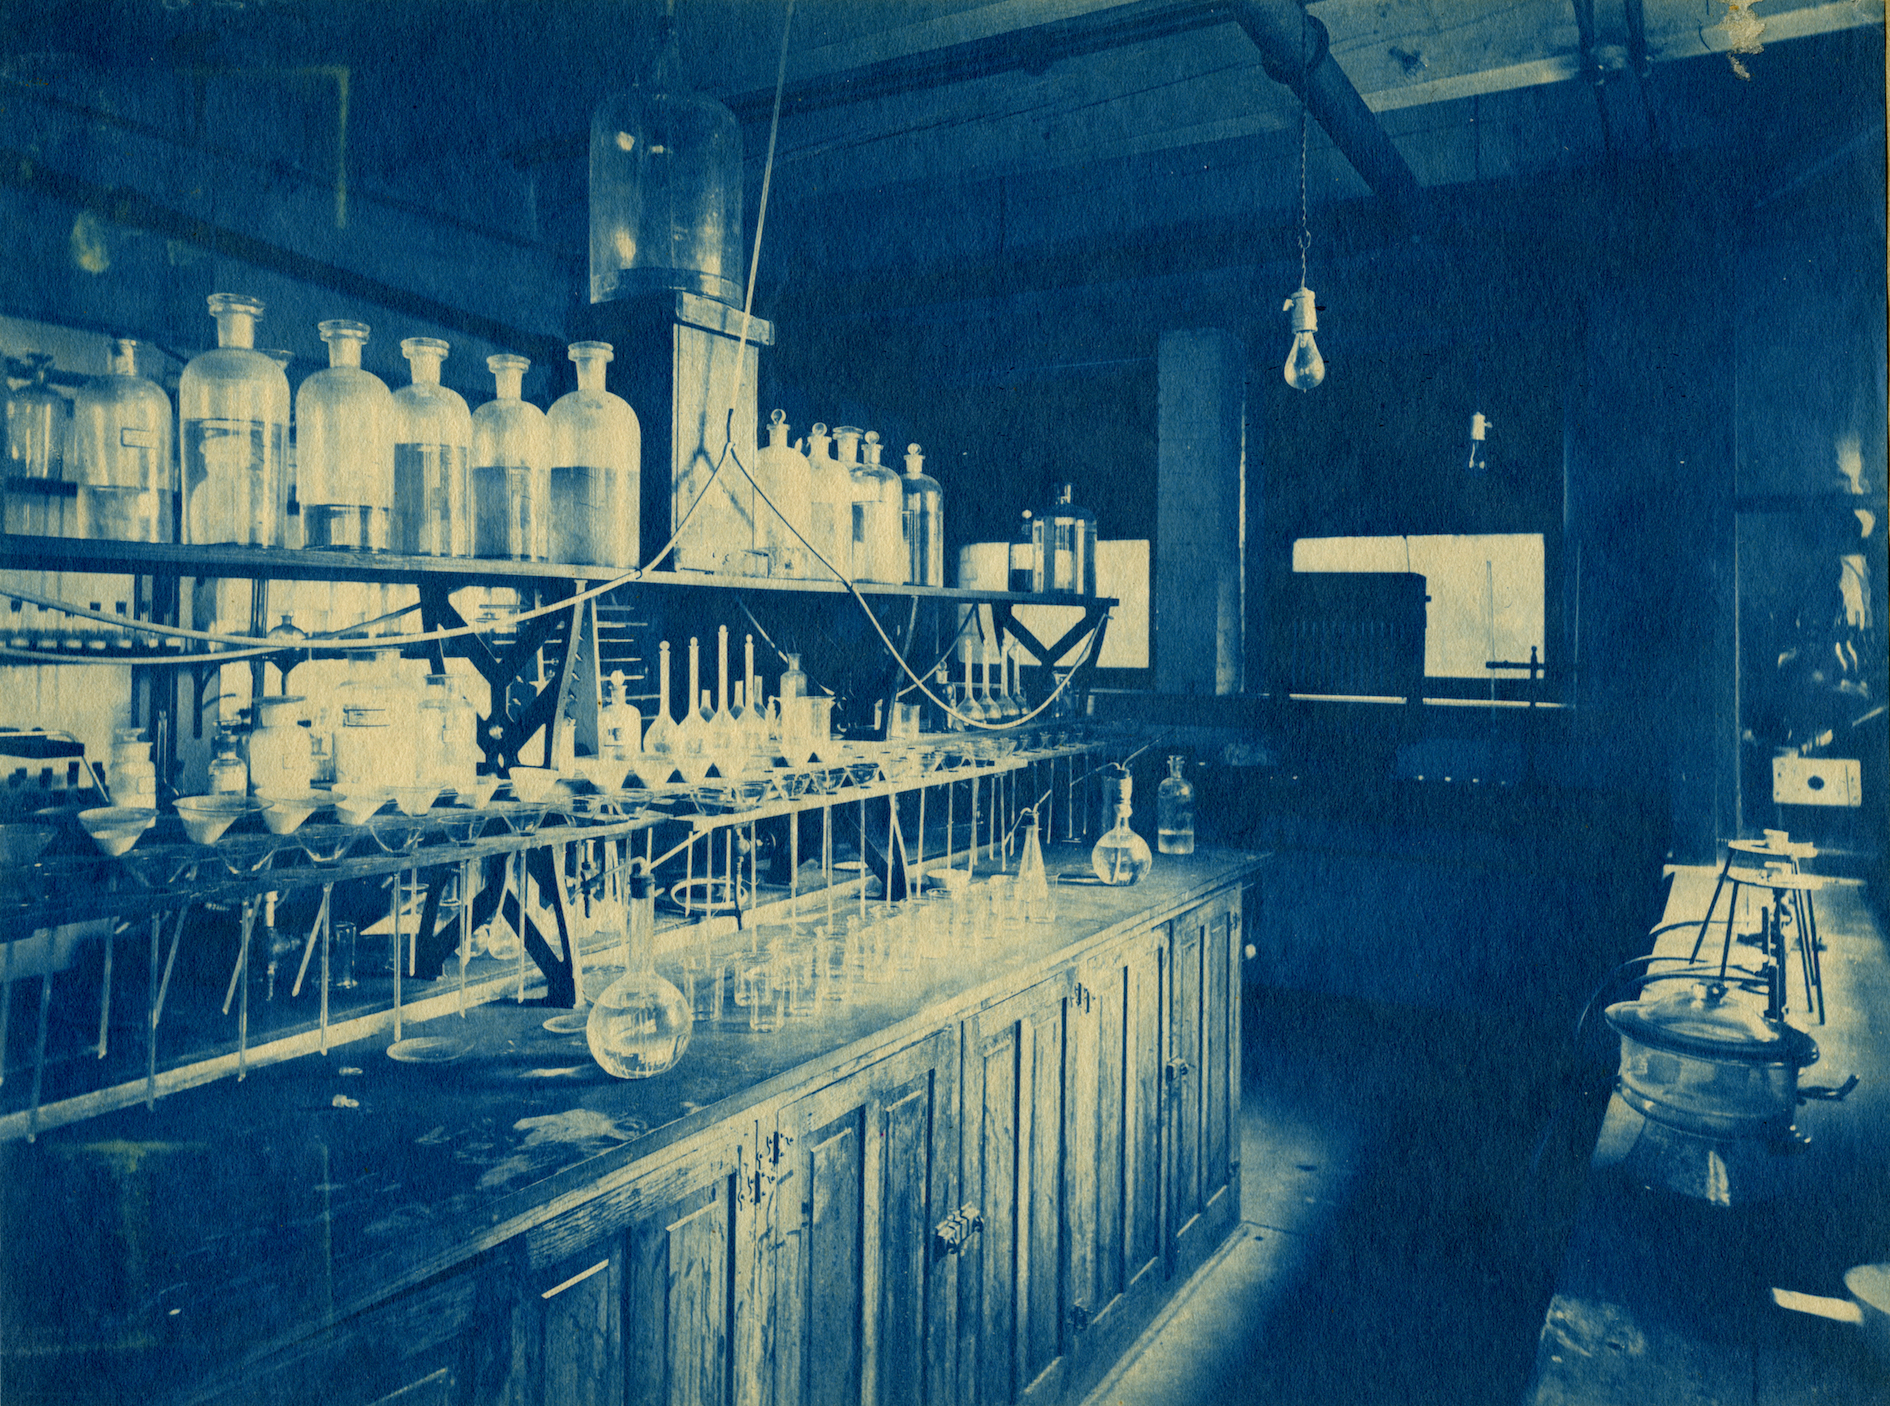 Cyanotype photo of the interior of the Chemistry Building, now Noyes Laboratory, circa 1910s